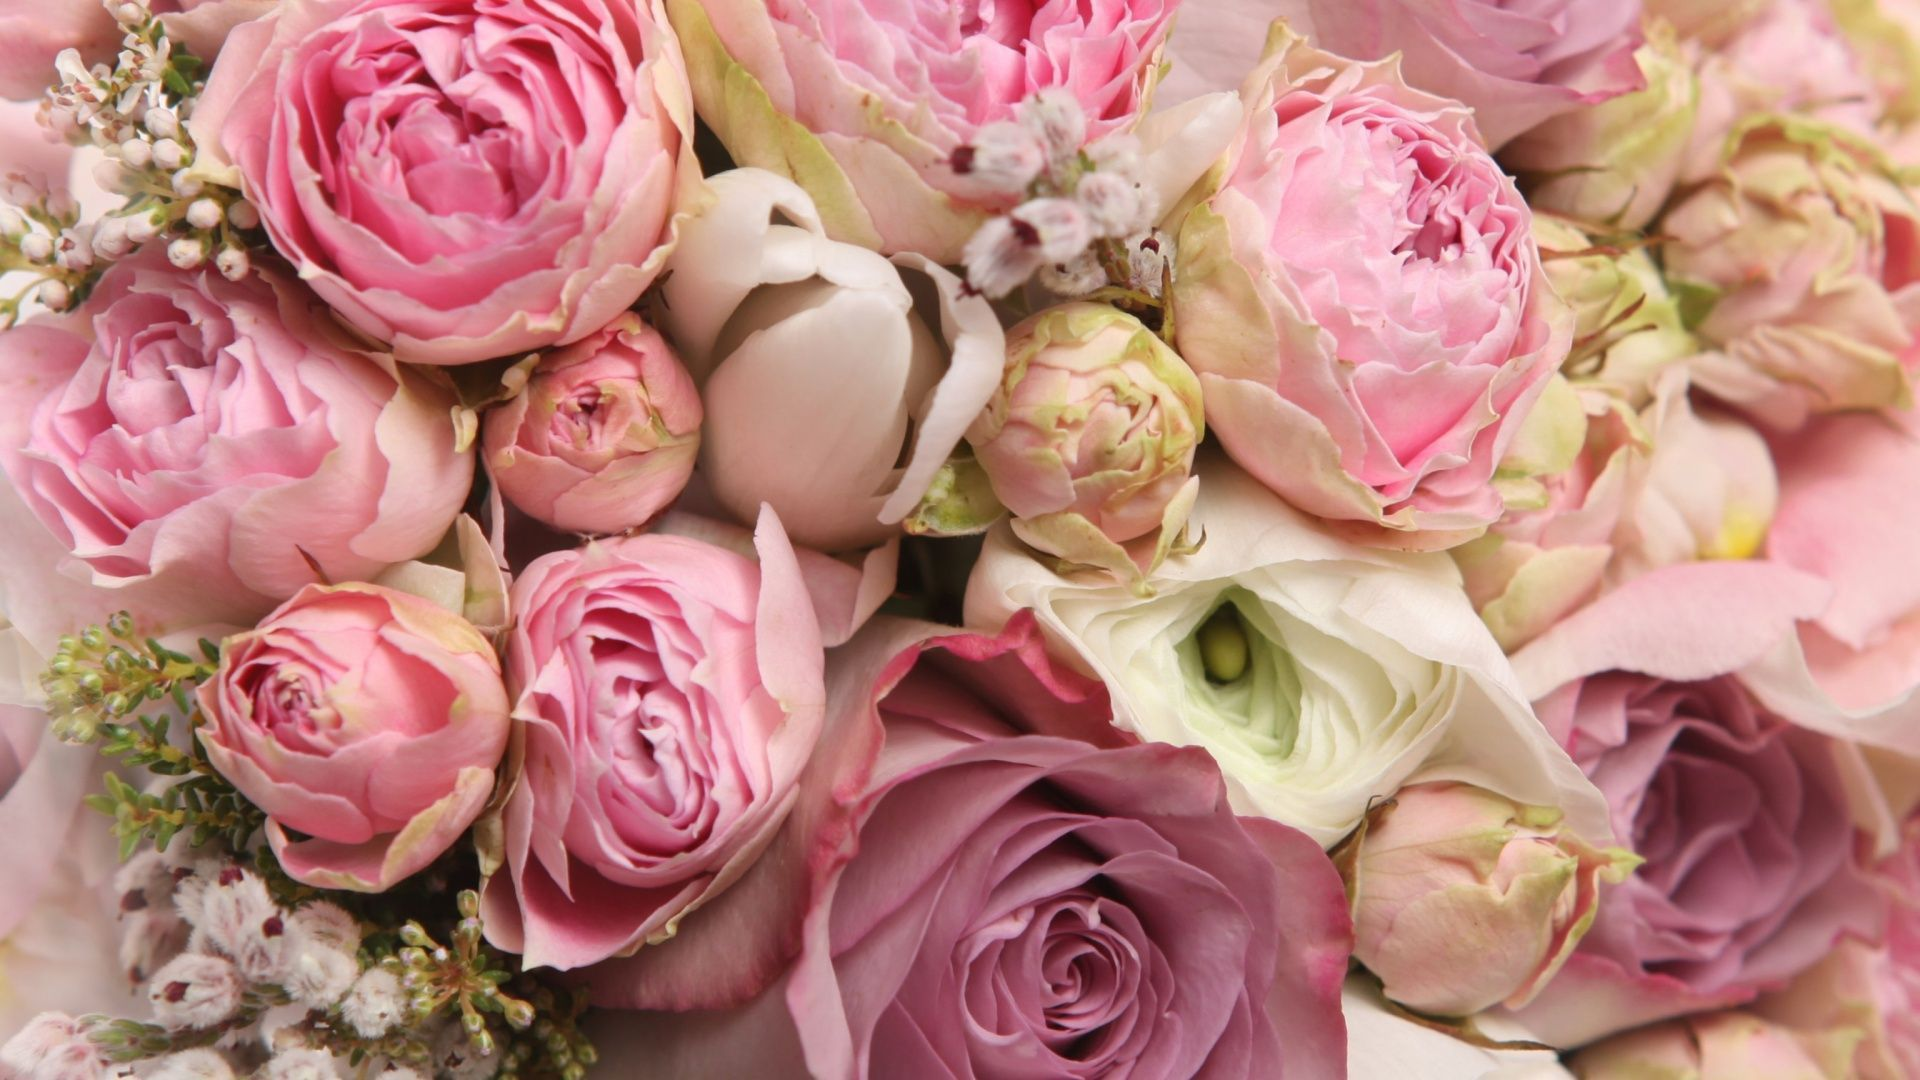 flowers for > pink peony wallpaper | flower power | pinterest